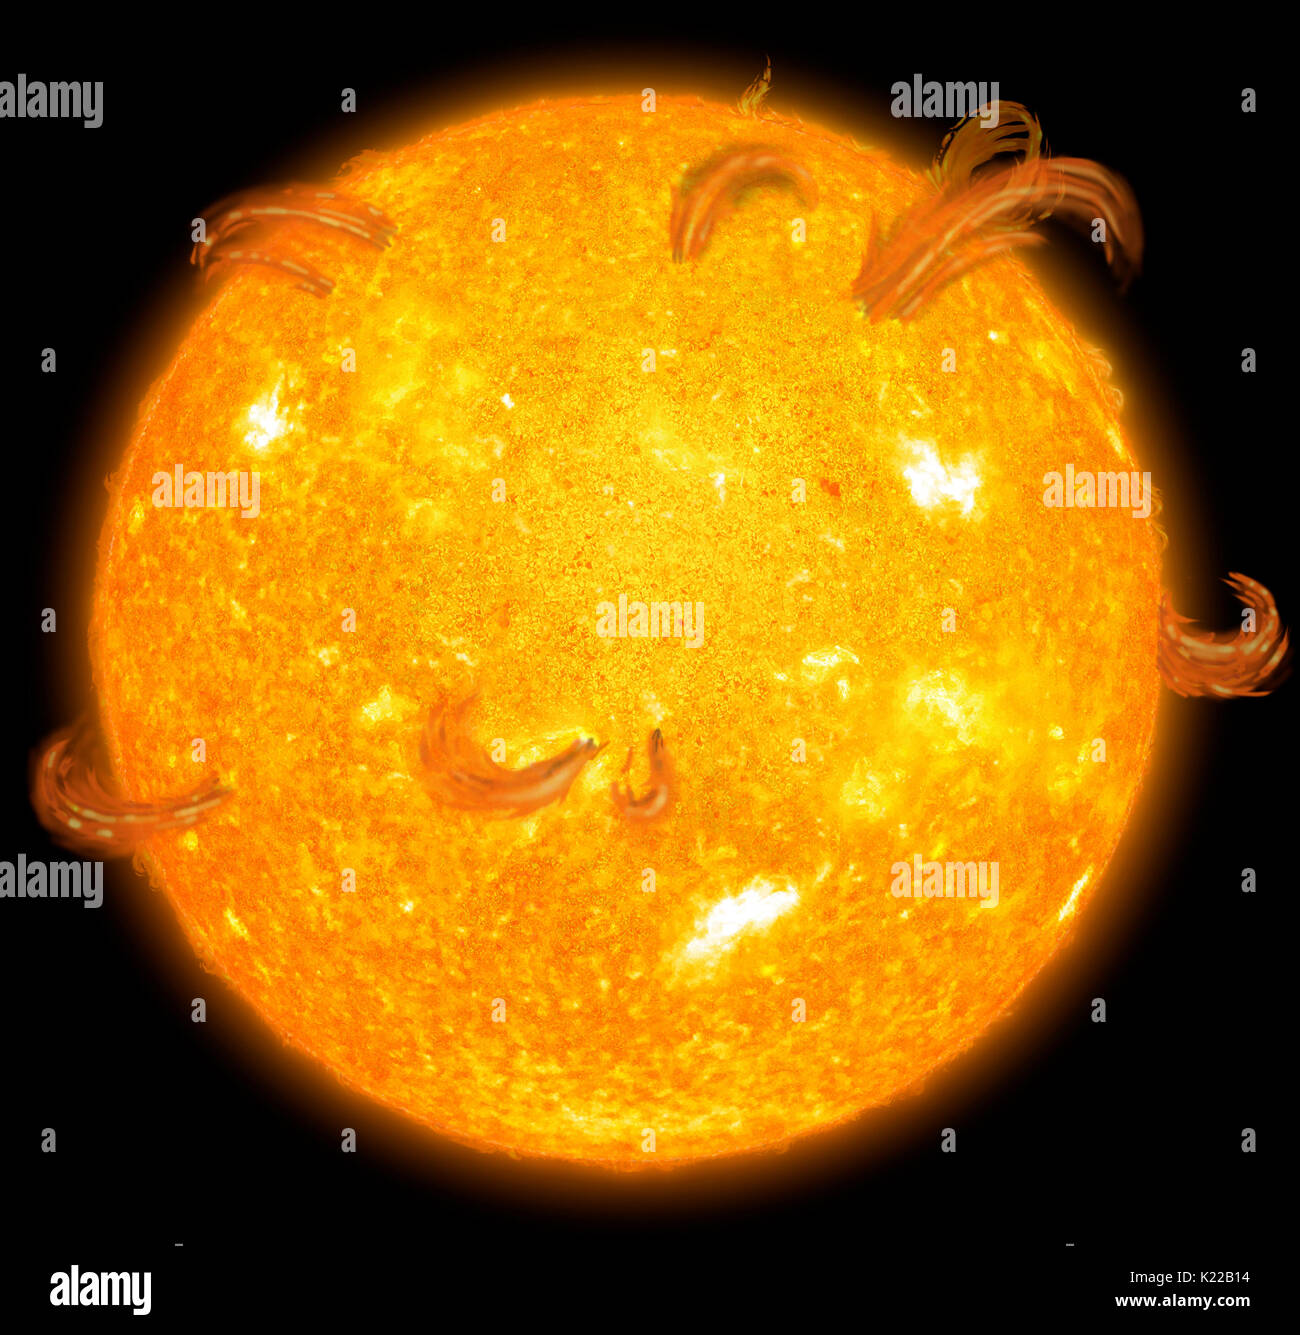 On Earth, the transmission of electricity and the signals transmitted by communications satellites are affected by phenomena known as magnetic storms, which are linked to fluctuations in the level of magnetic activity in the Sun. Every 11 years, the Sun goes through a period when sun spots and solar flares reach maximum levels before tapering off once again. - Stock Image